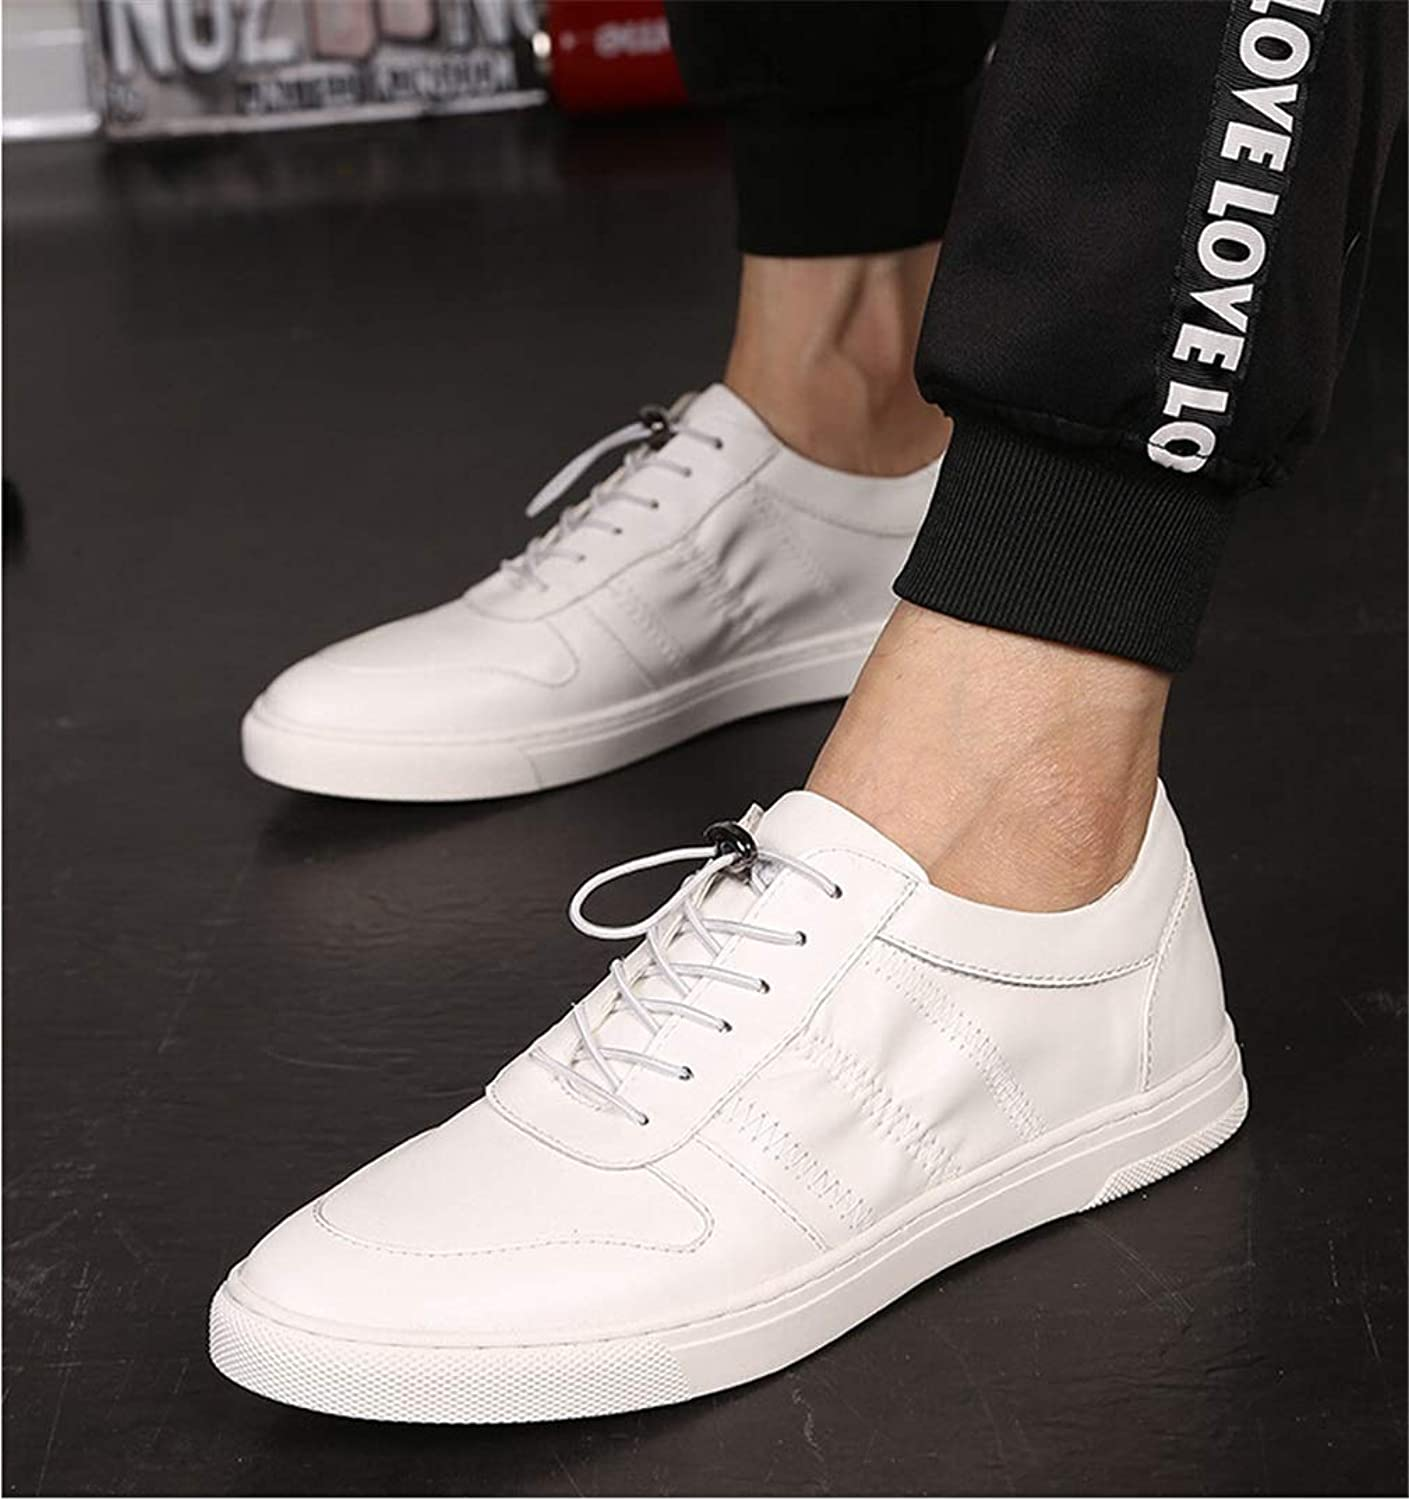 Mens Casual shoes Low Top Leather Lace Up Deck shoes Loafers & Slip-Ons Driving shoes Fitness & Cross Training shoes YAN